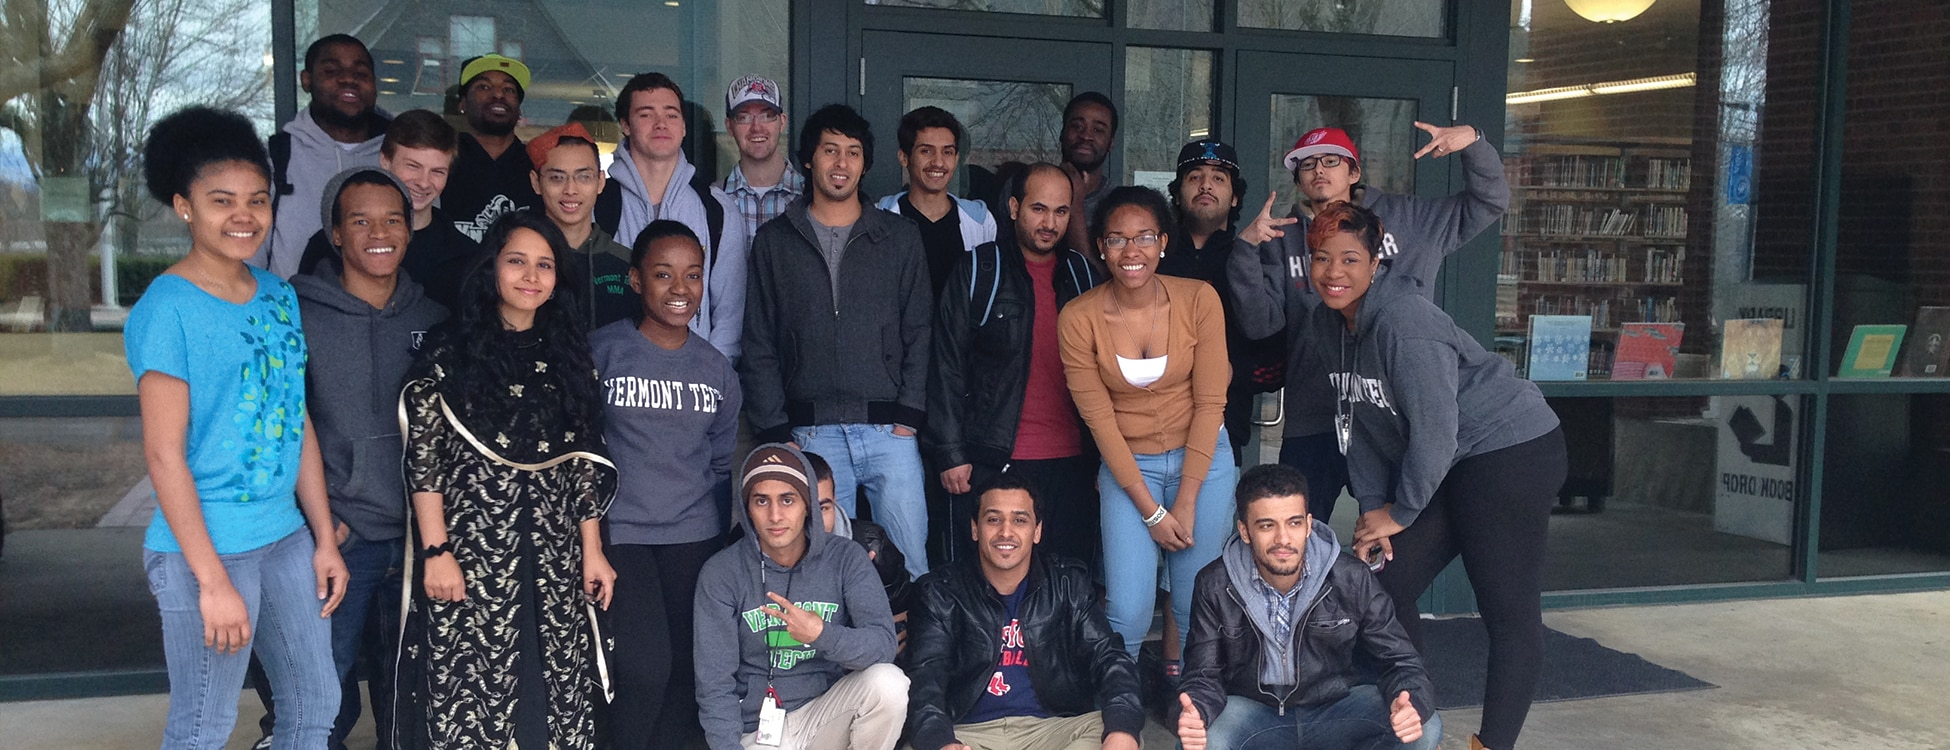 Vermont Tech's Multicultural Club members pose outside of the Hartness Library, student club, Randolph Center campus